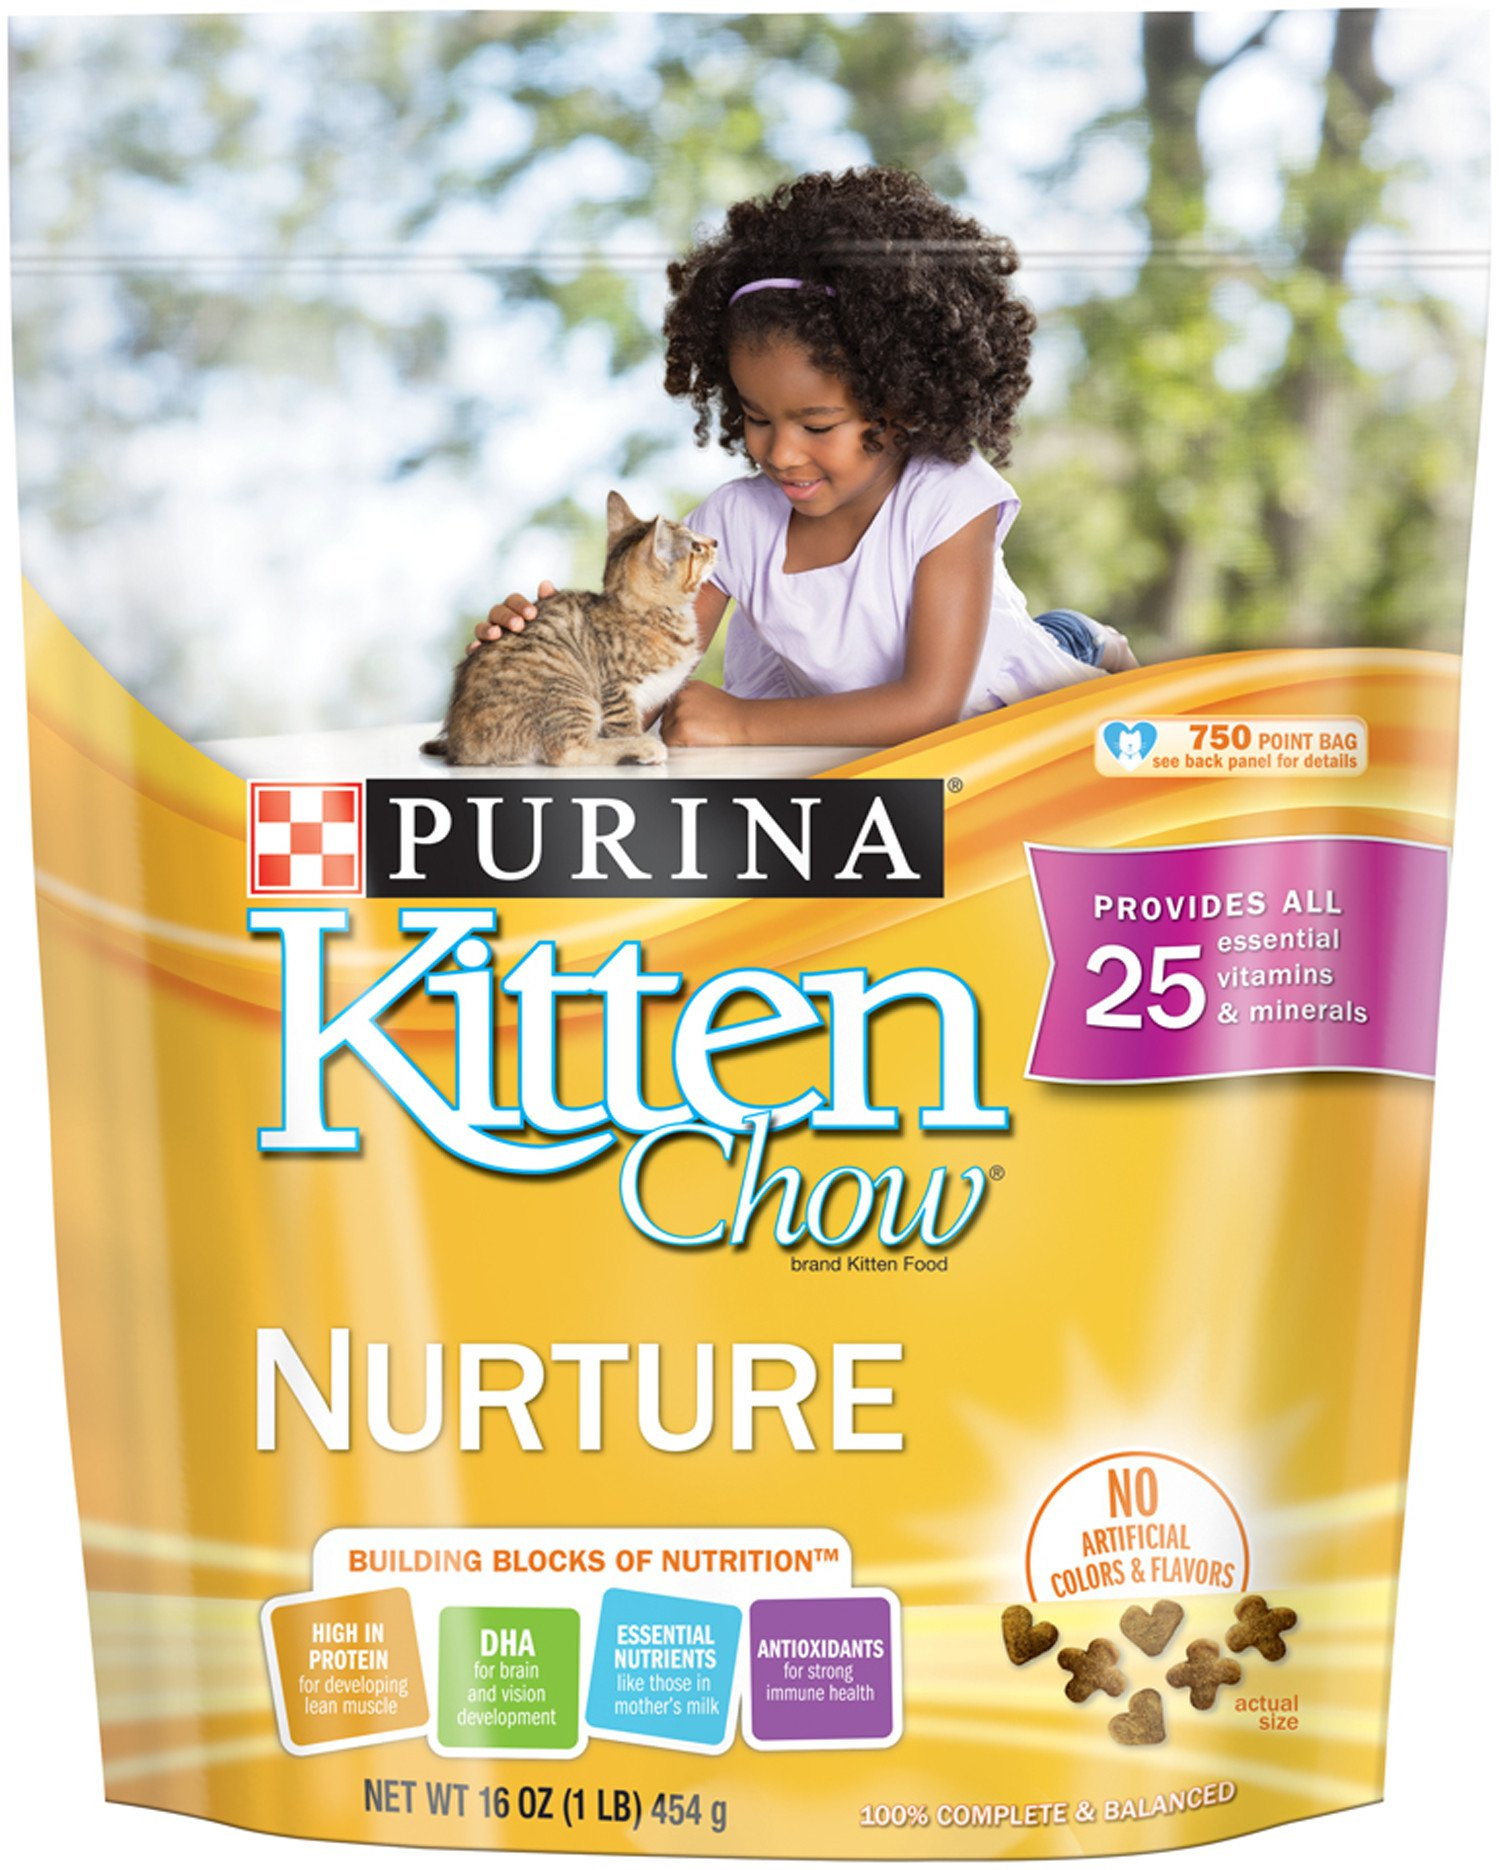 Purina Kitten Chow Dry Kitten Food, Nurture, 16 Ounce Carton, Pack Of 6 by Purina Cat Chow